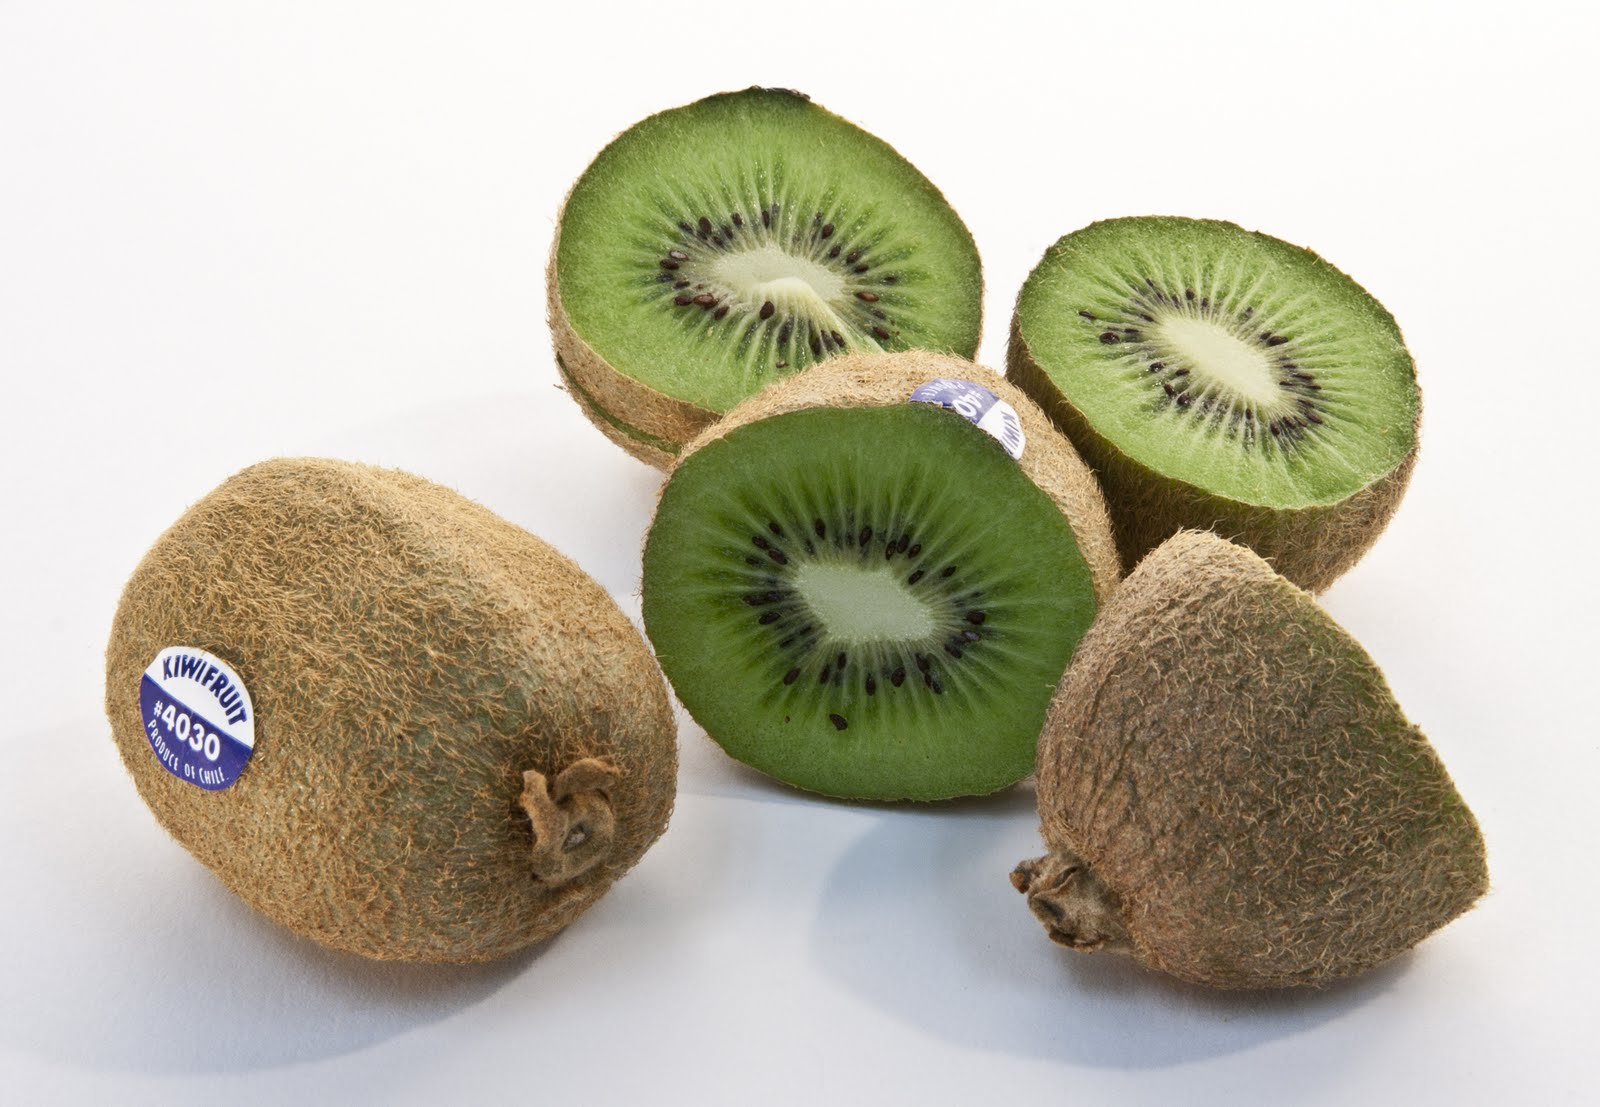 How to put money on Kiwi in different ways 38